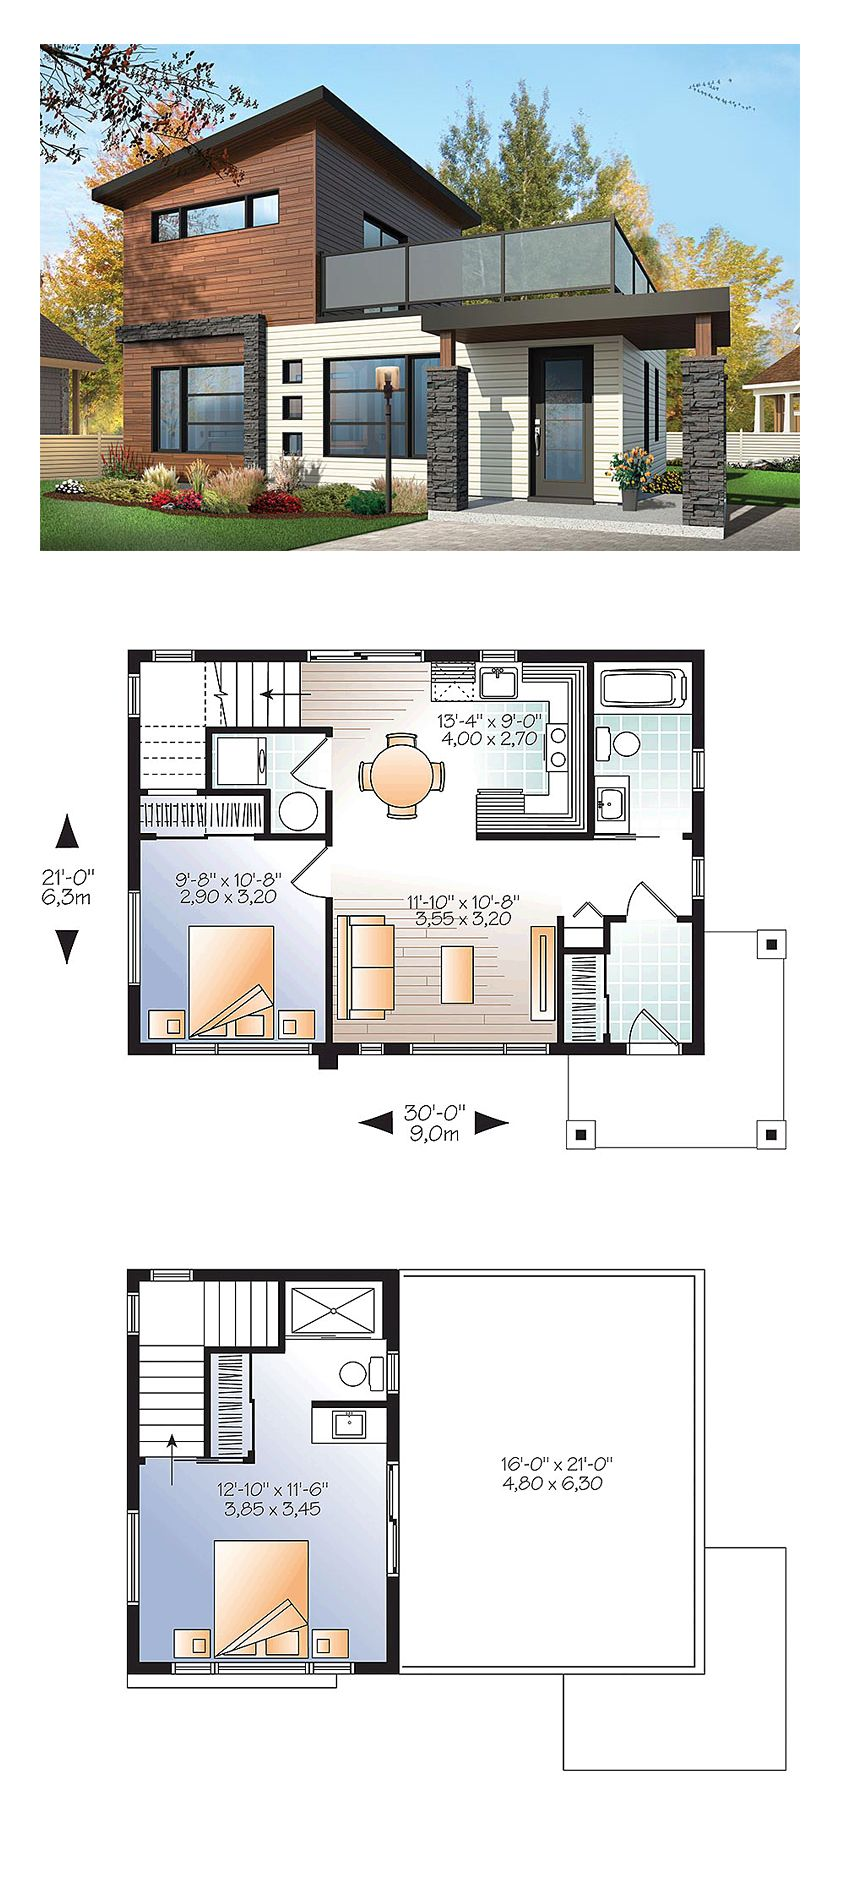 Modern house plan 76461 total living area 924 sq ft for Tiny house blueprints free